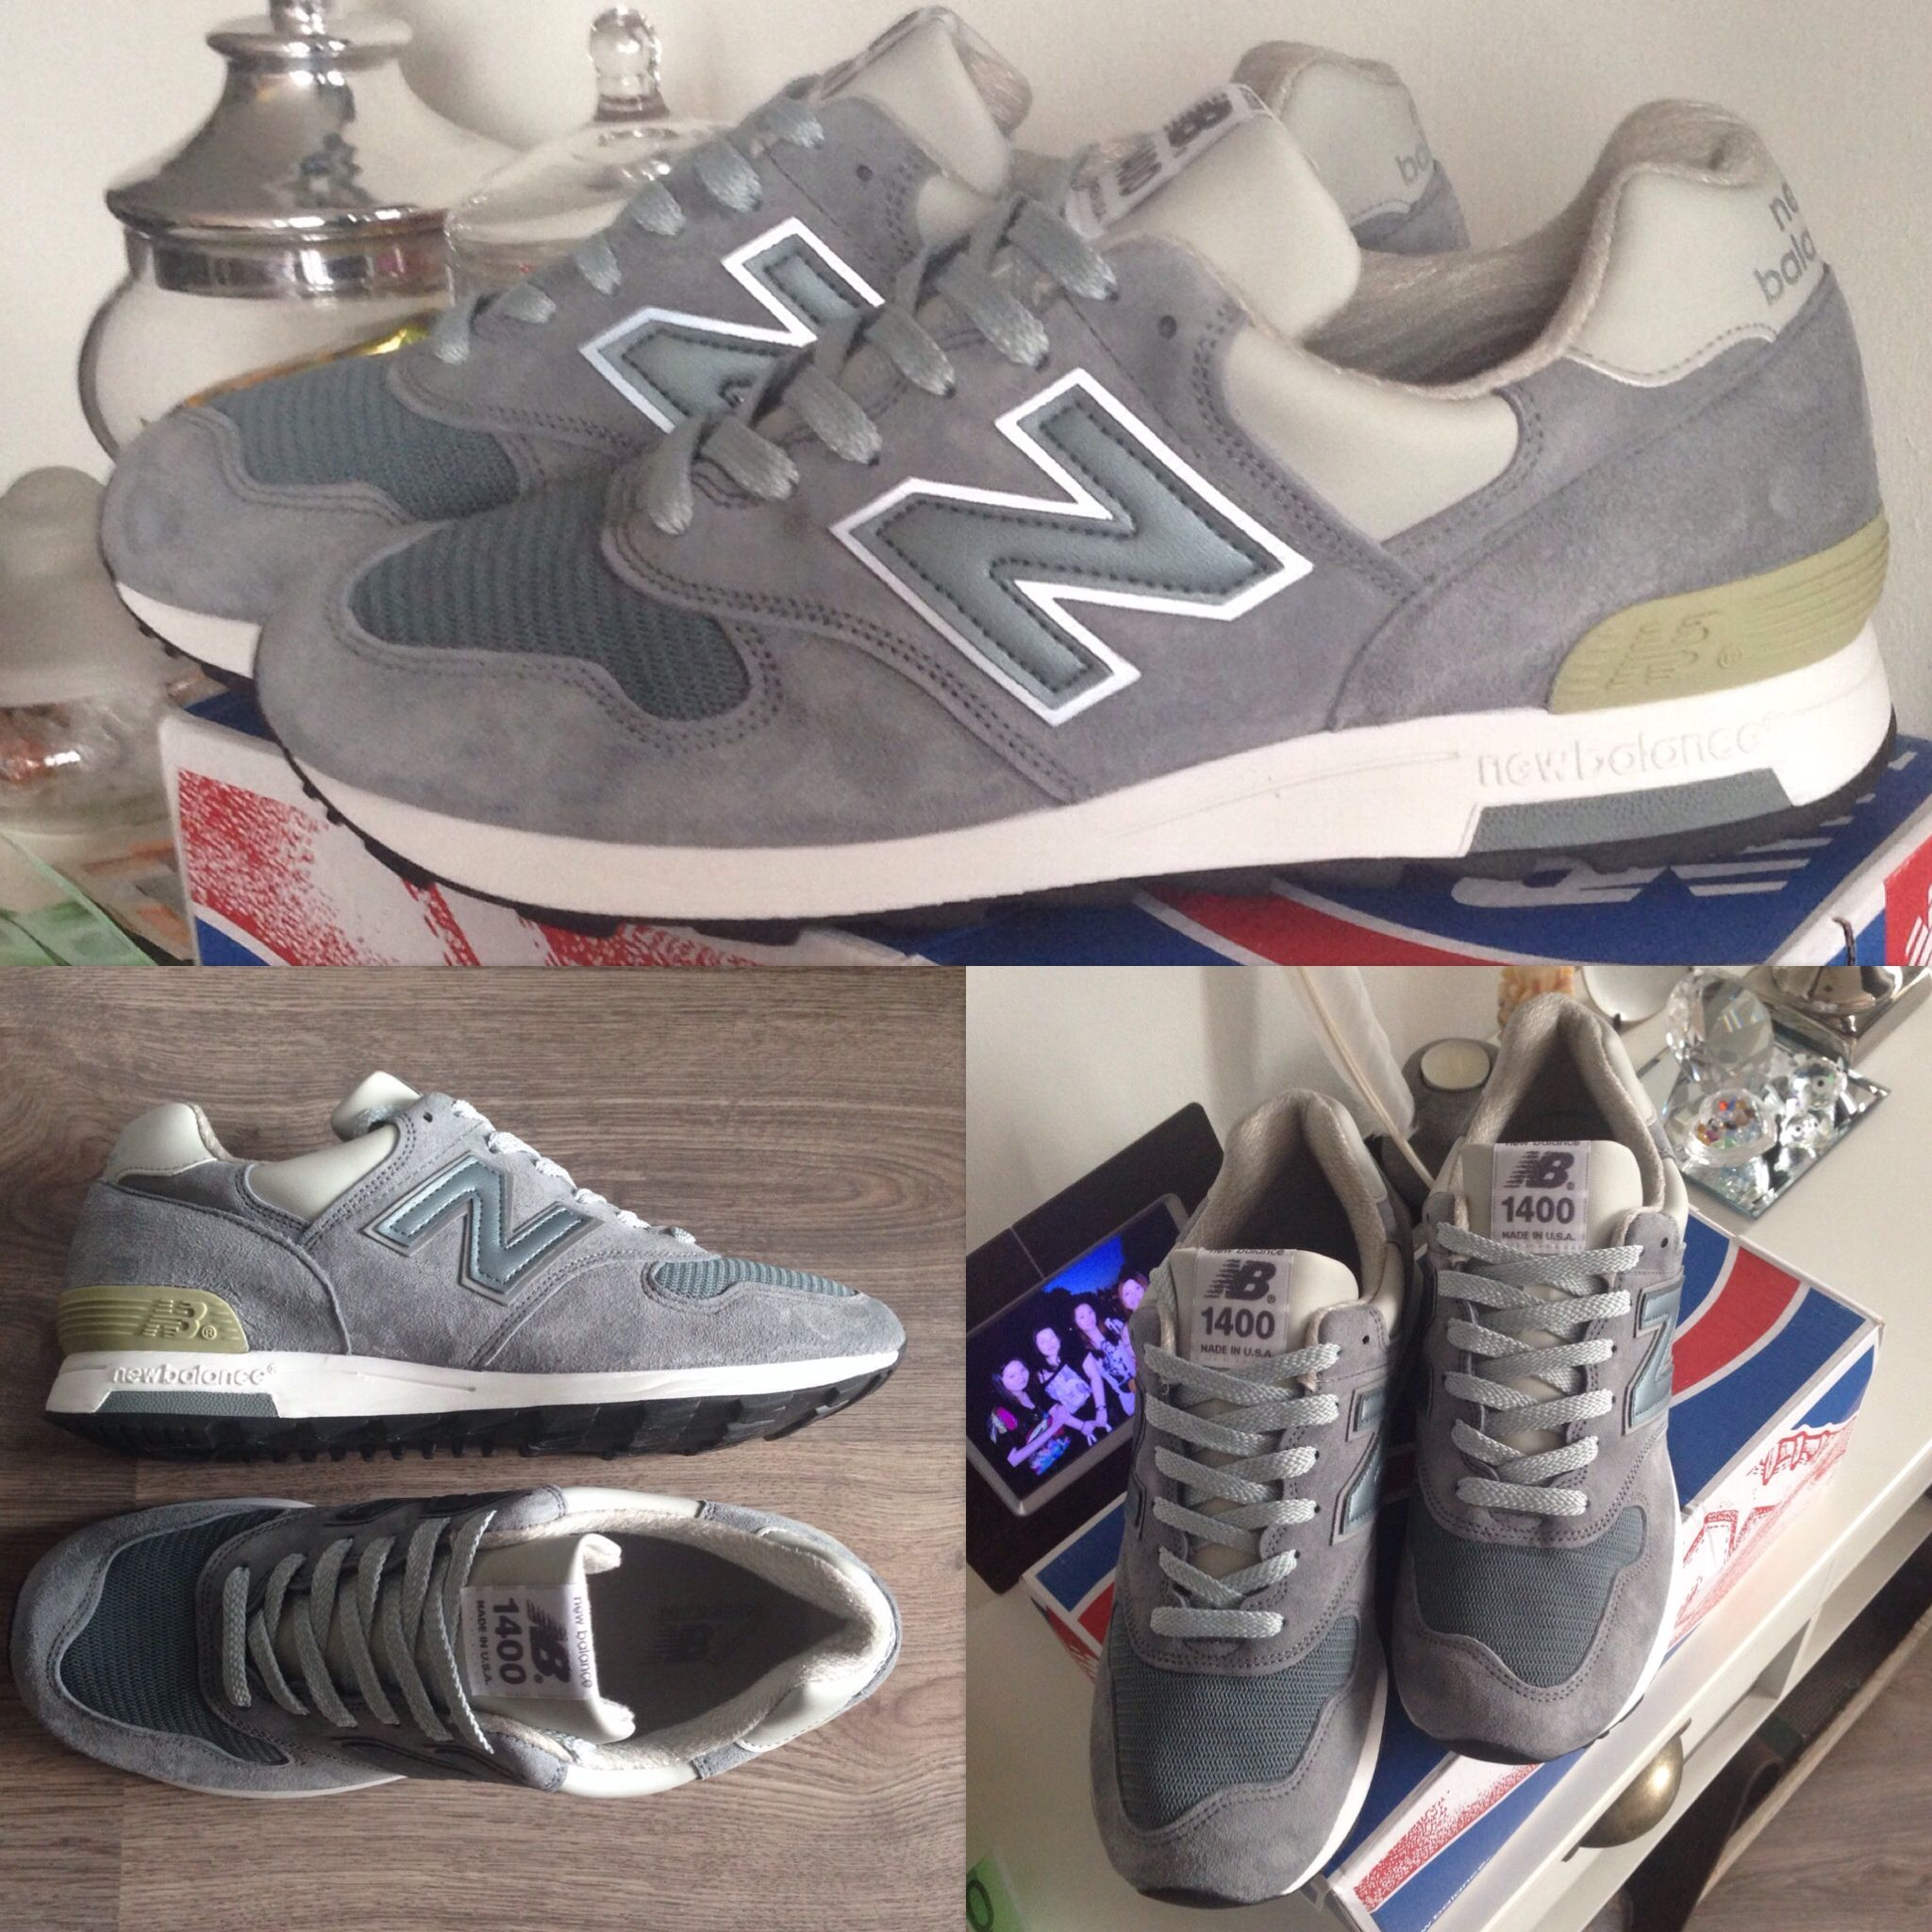 86925028bd814 Got these from K-sneakers Hong Kong. New Balance 1400 SB US made ...